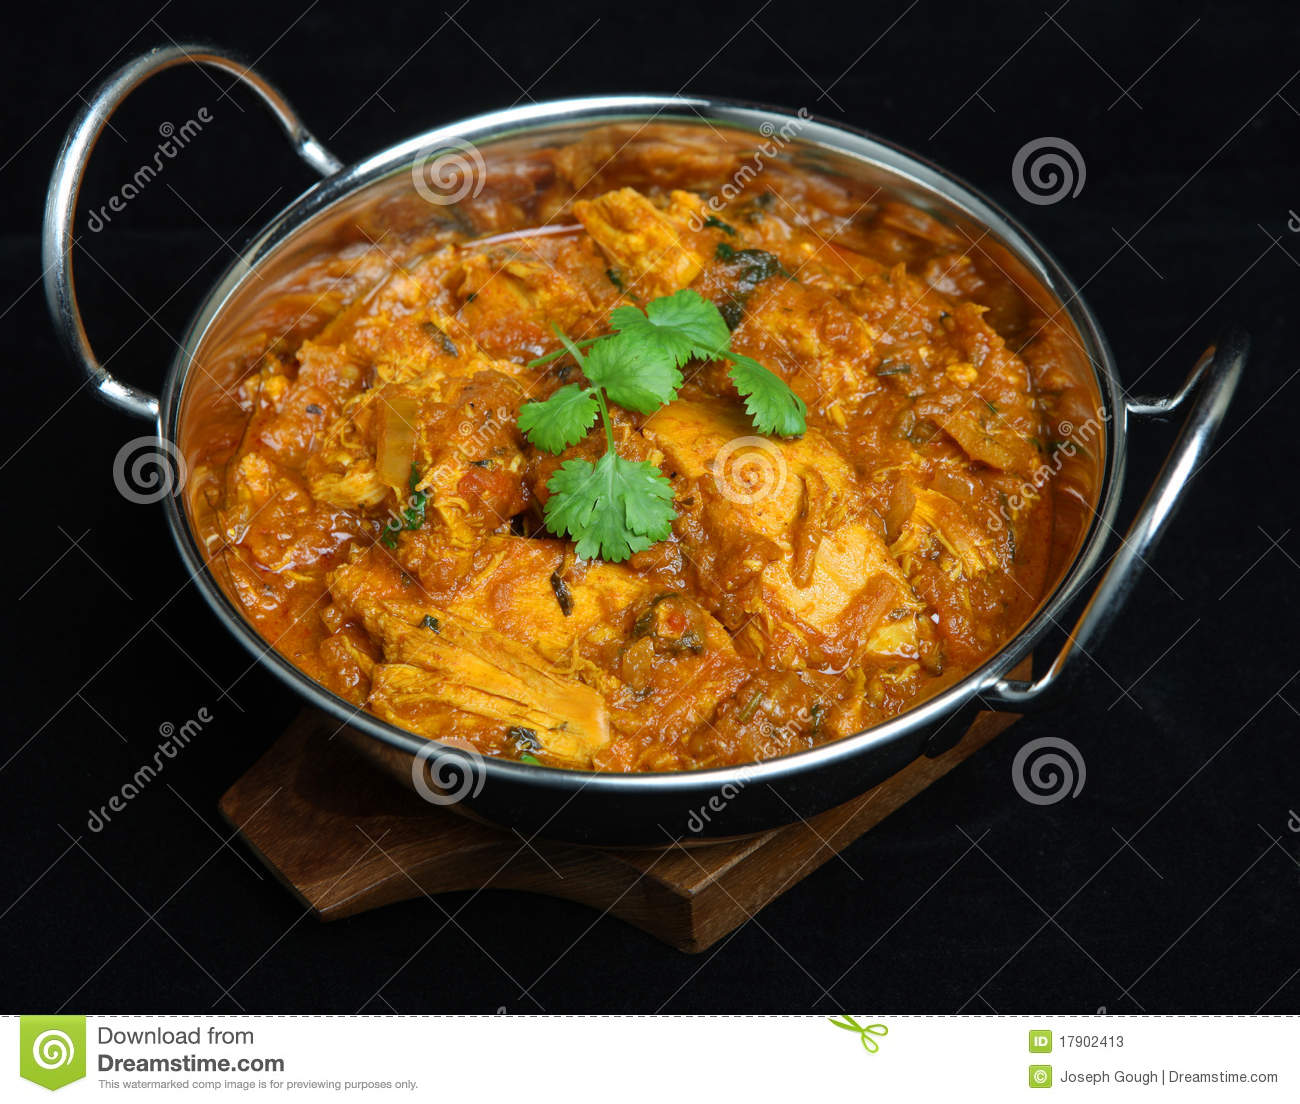 indian chicken rangoon curry food stock photos image 17902413. Black Bedroom Furniture Sets. Home Design Ideas